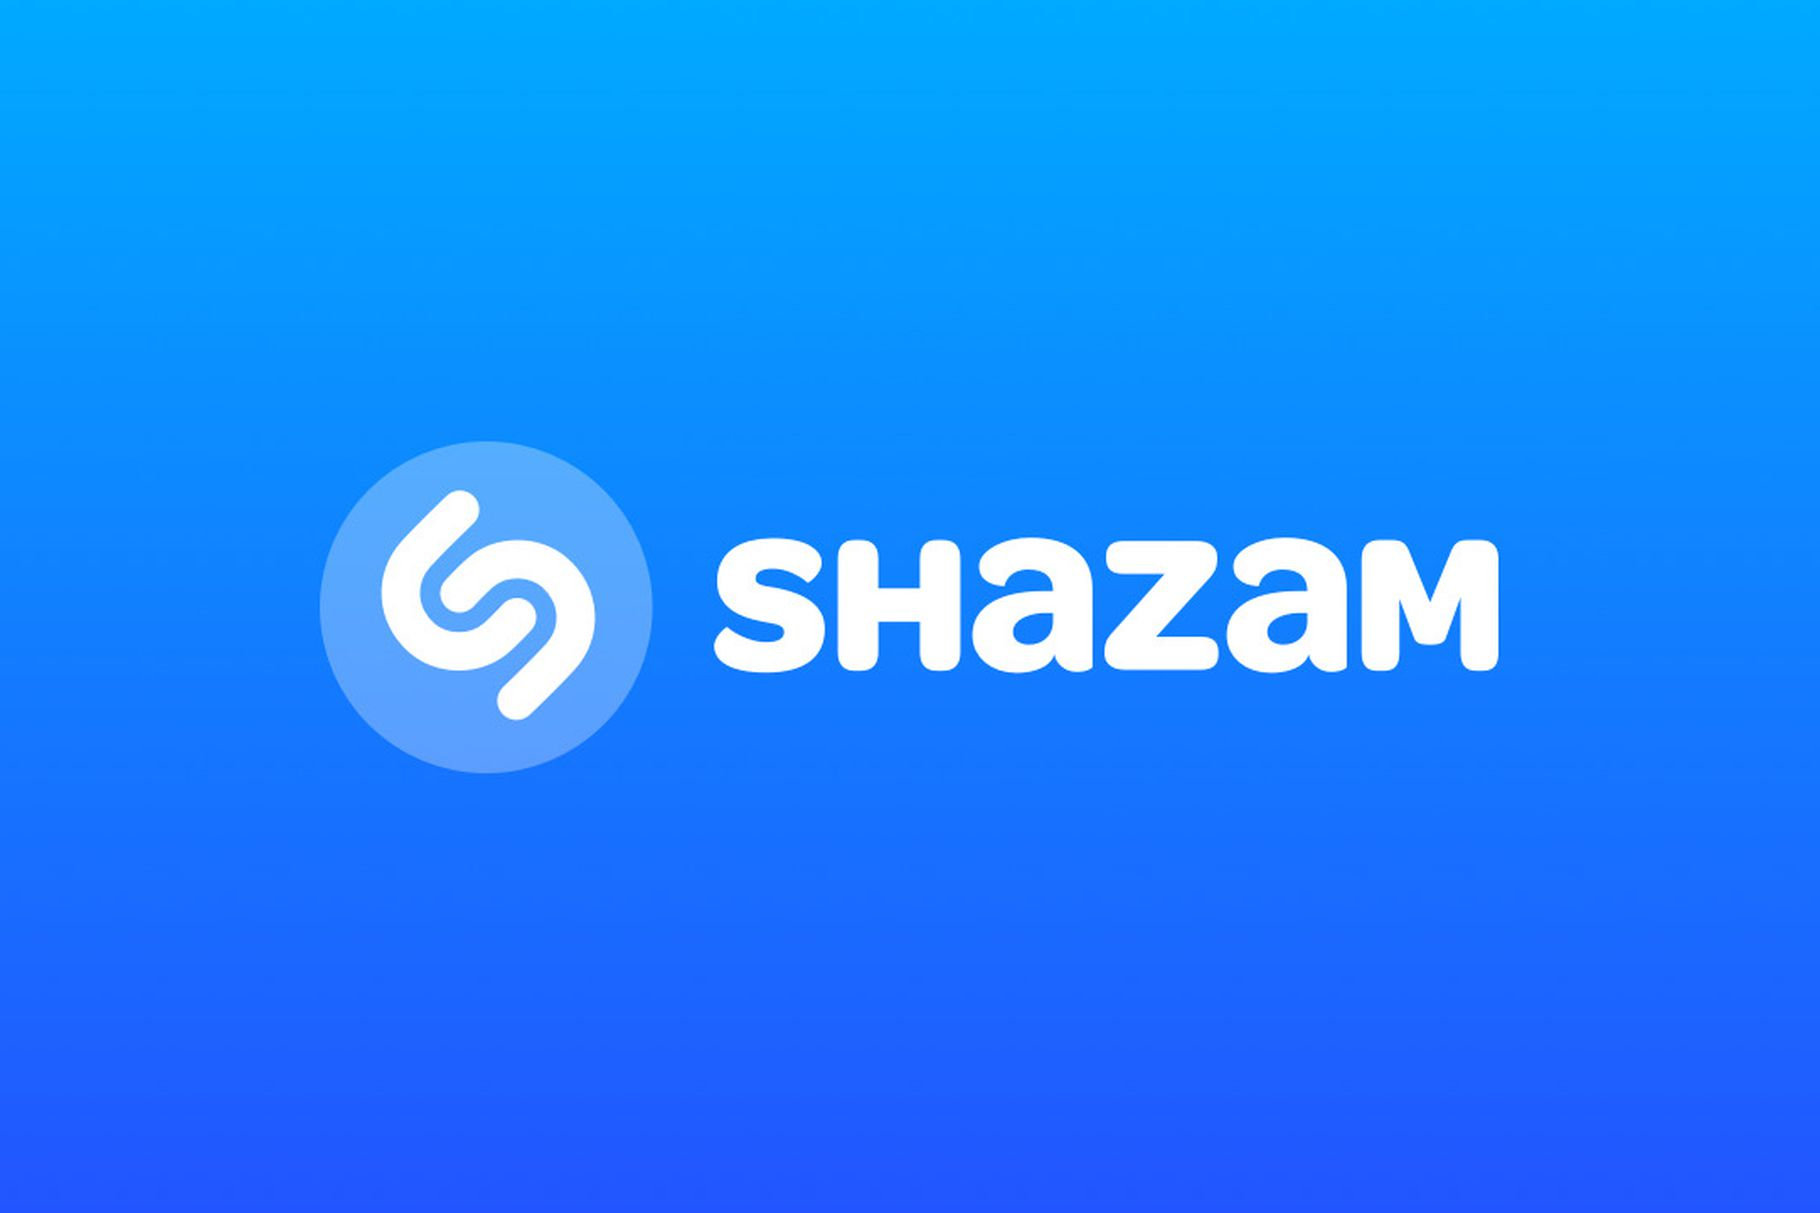 Apple confirms it has acquired Shazam (theverge.com)